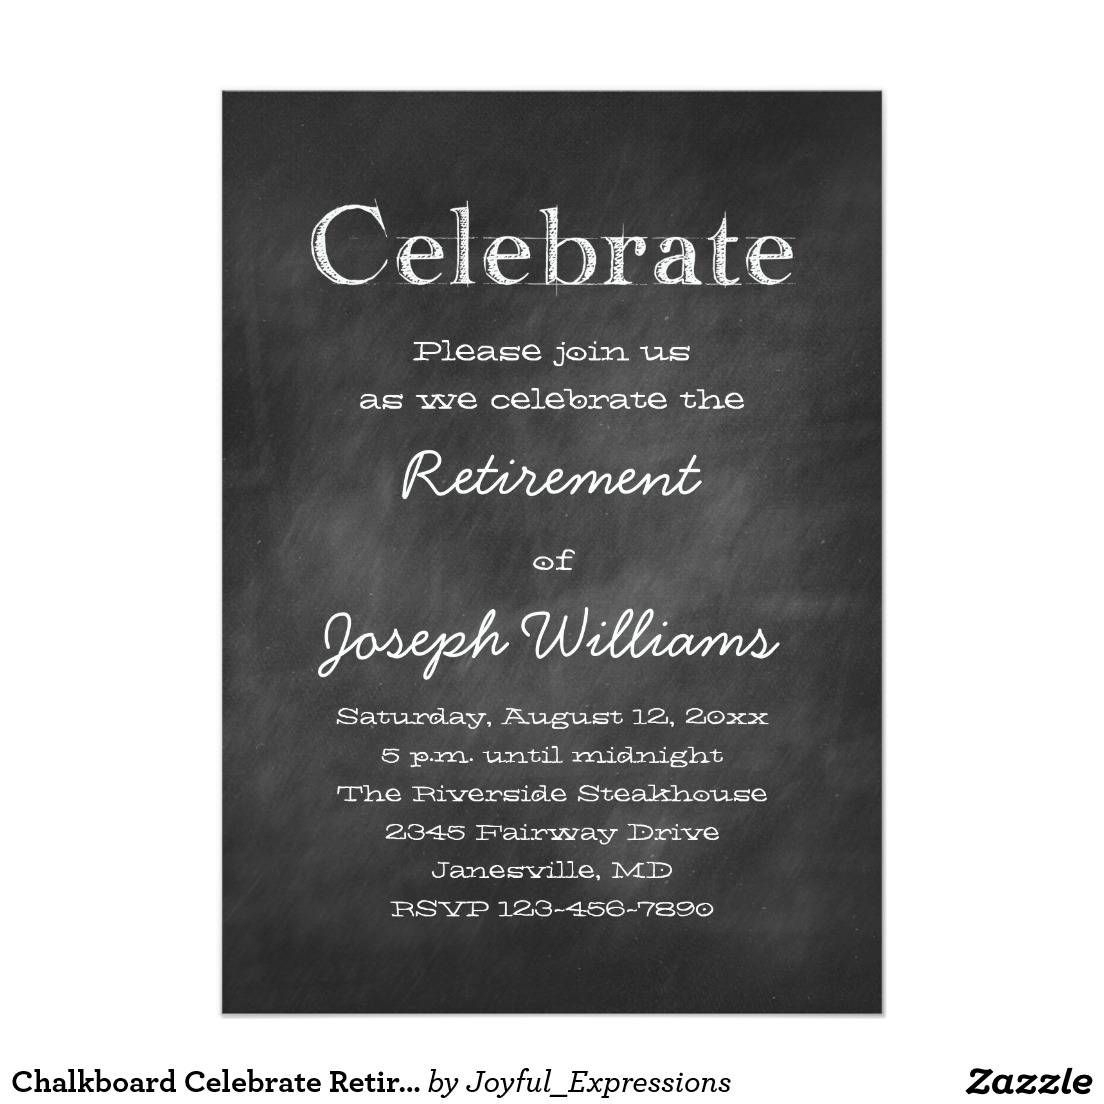 003 Retirement Party Invitations Templates Template ~ Ulyssesroom - Free Printable Retirement Party Invitations